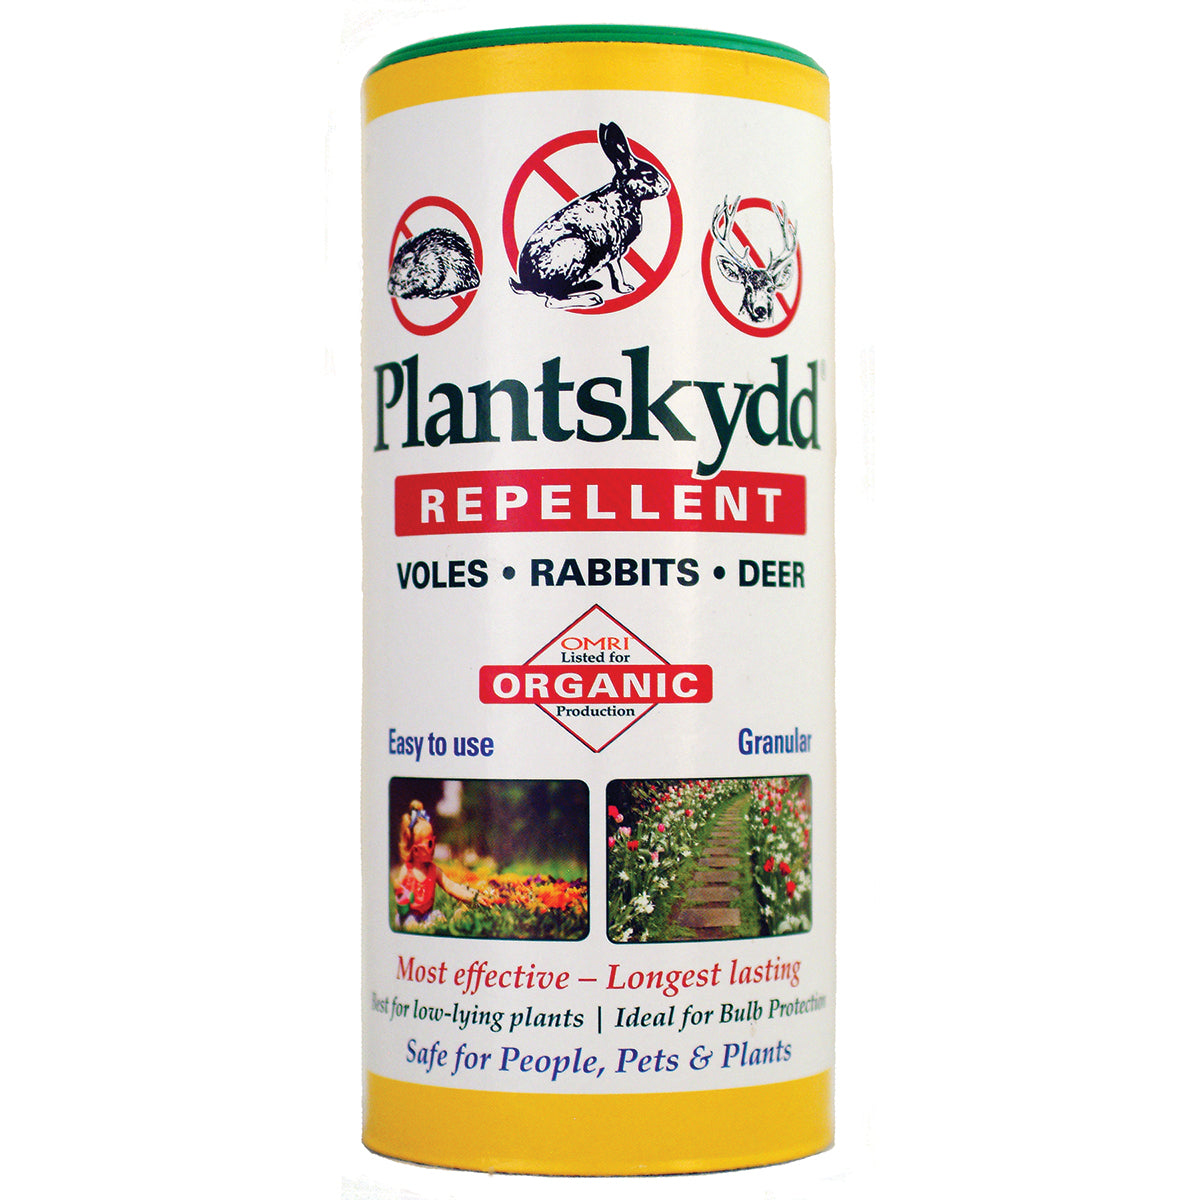 Plantskydd Rabbit and Small Animal Repellent, 1-lb. Shaker Can